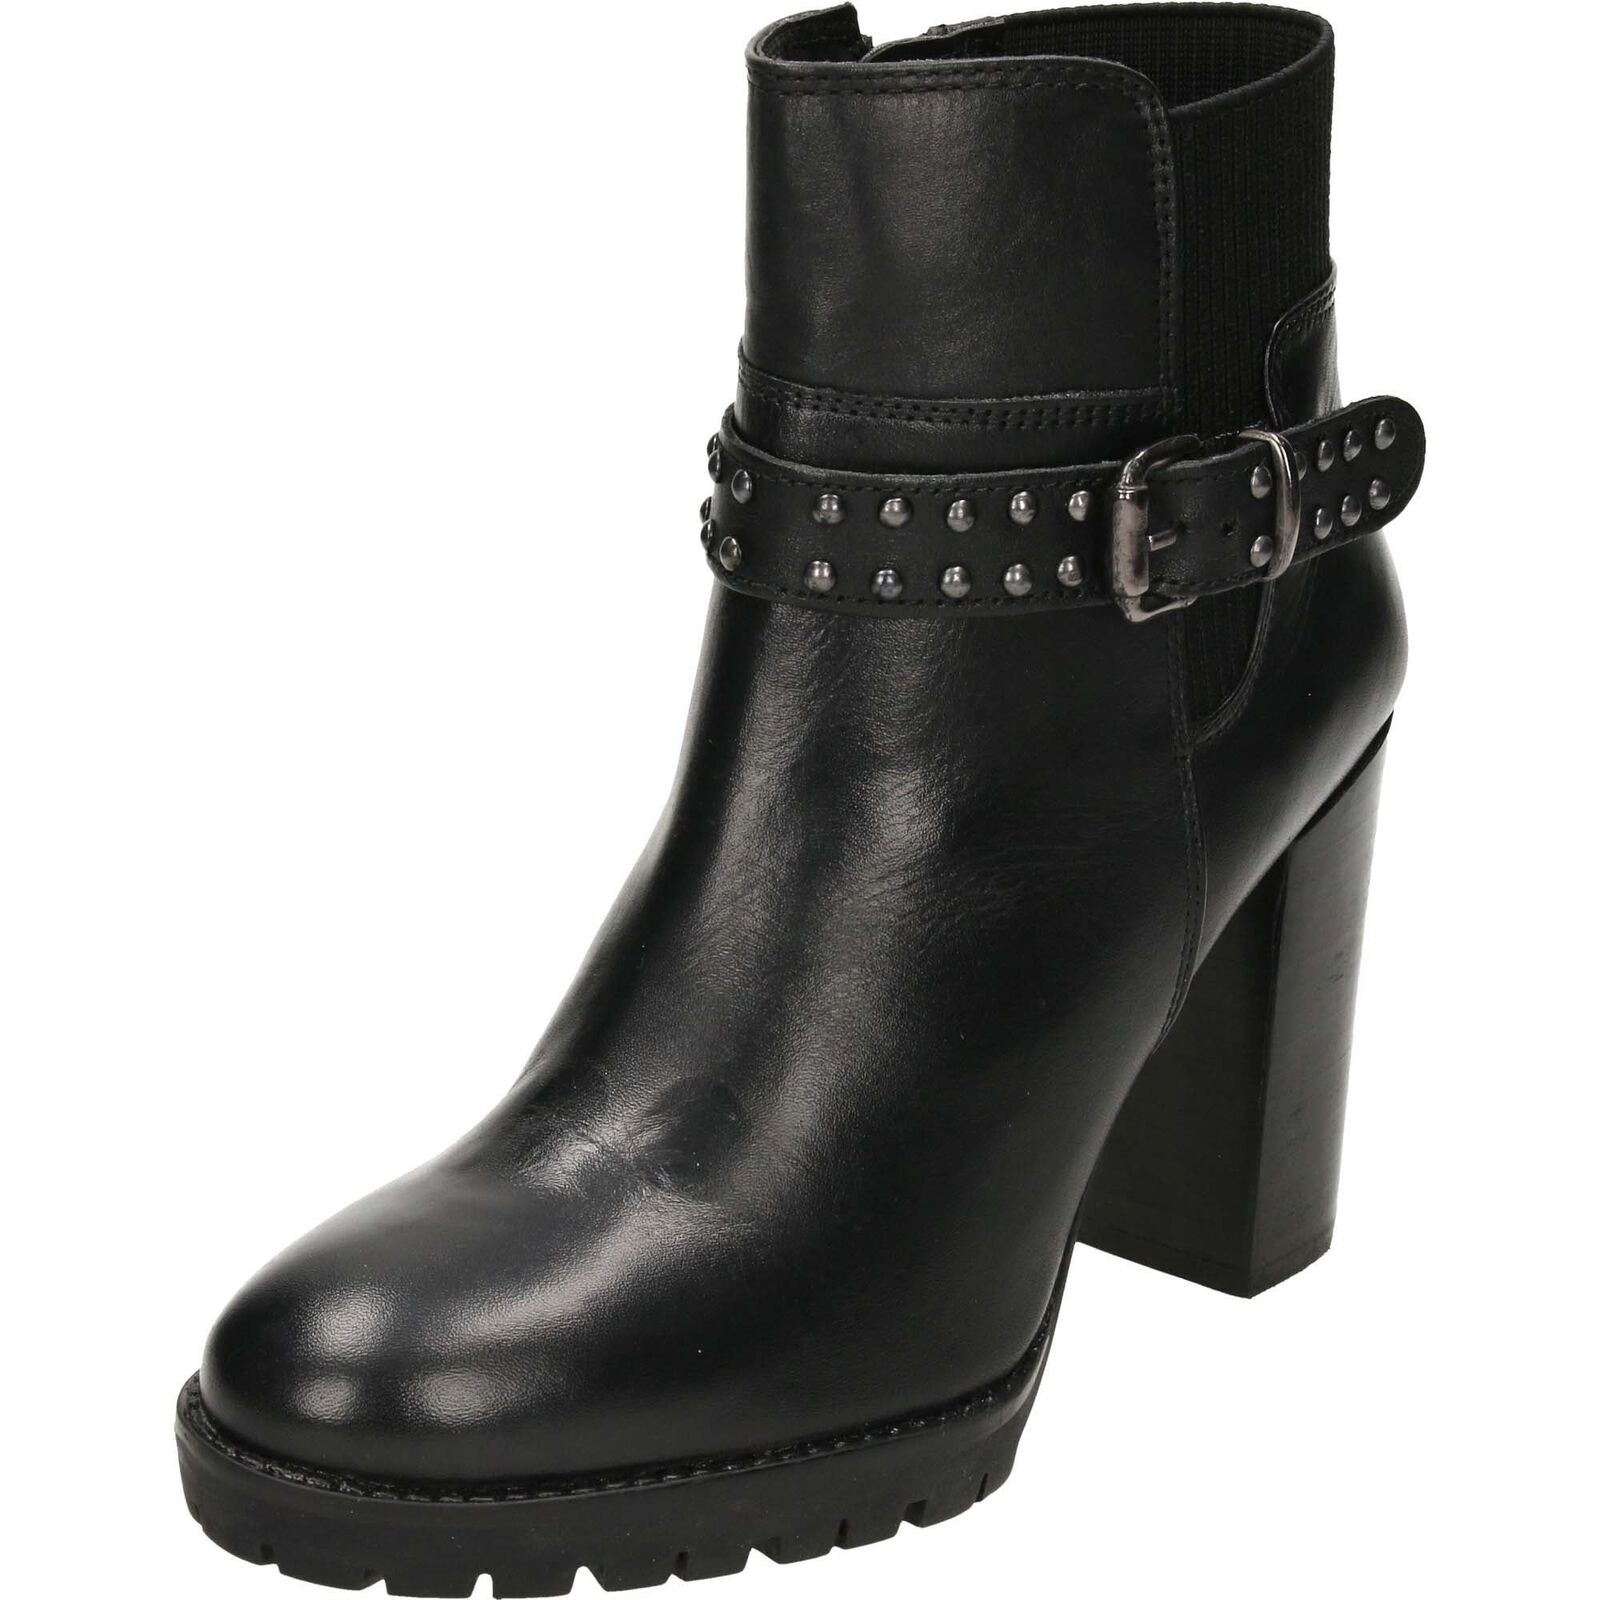 Grandes zapatos con descuento Ravel Whatley Leather Heeled Ankle Boots Black Chunky Studded Biker Gothic